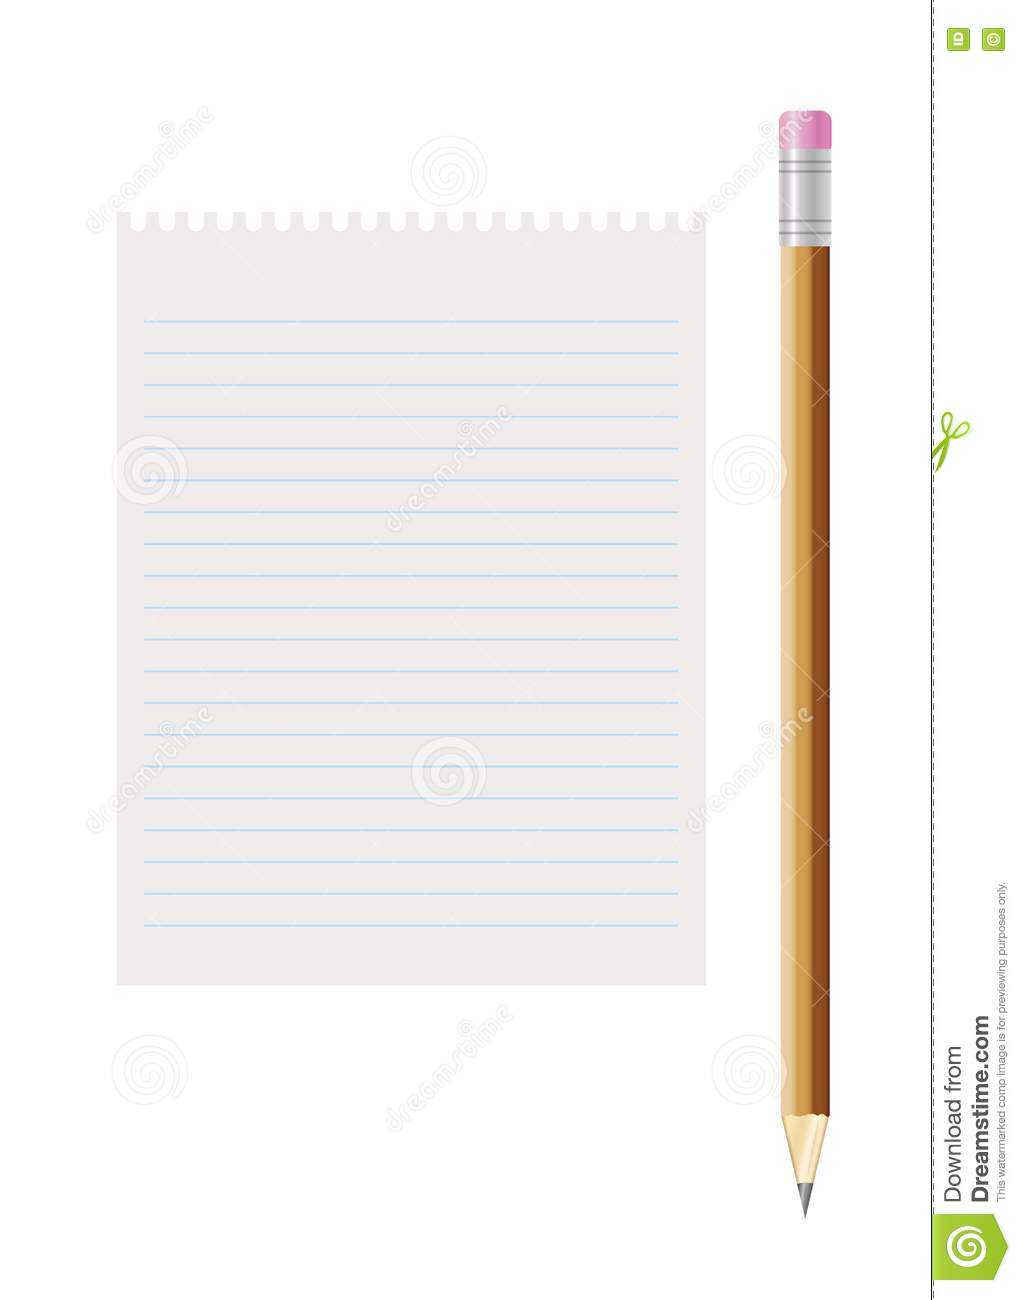 Blank Lined Paper And Pencil With Eraser Stock Illustration